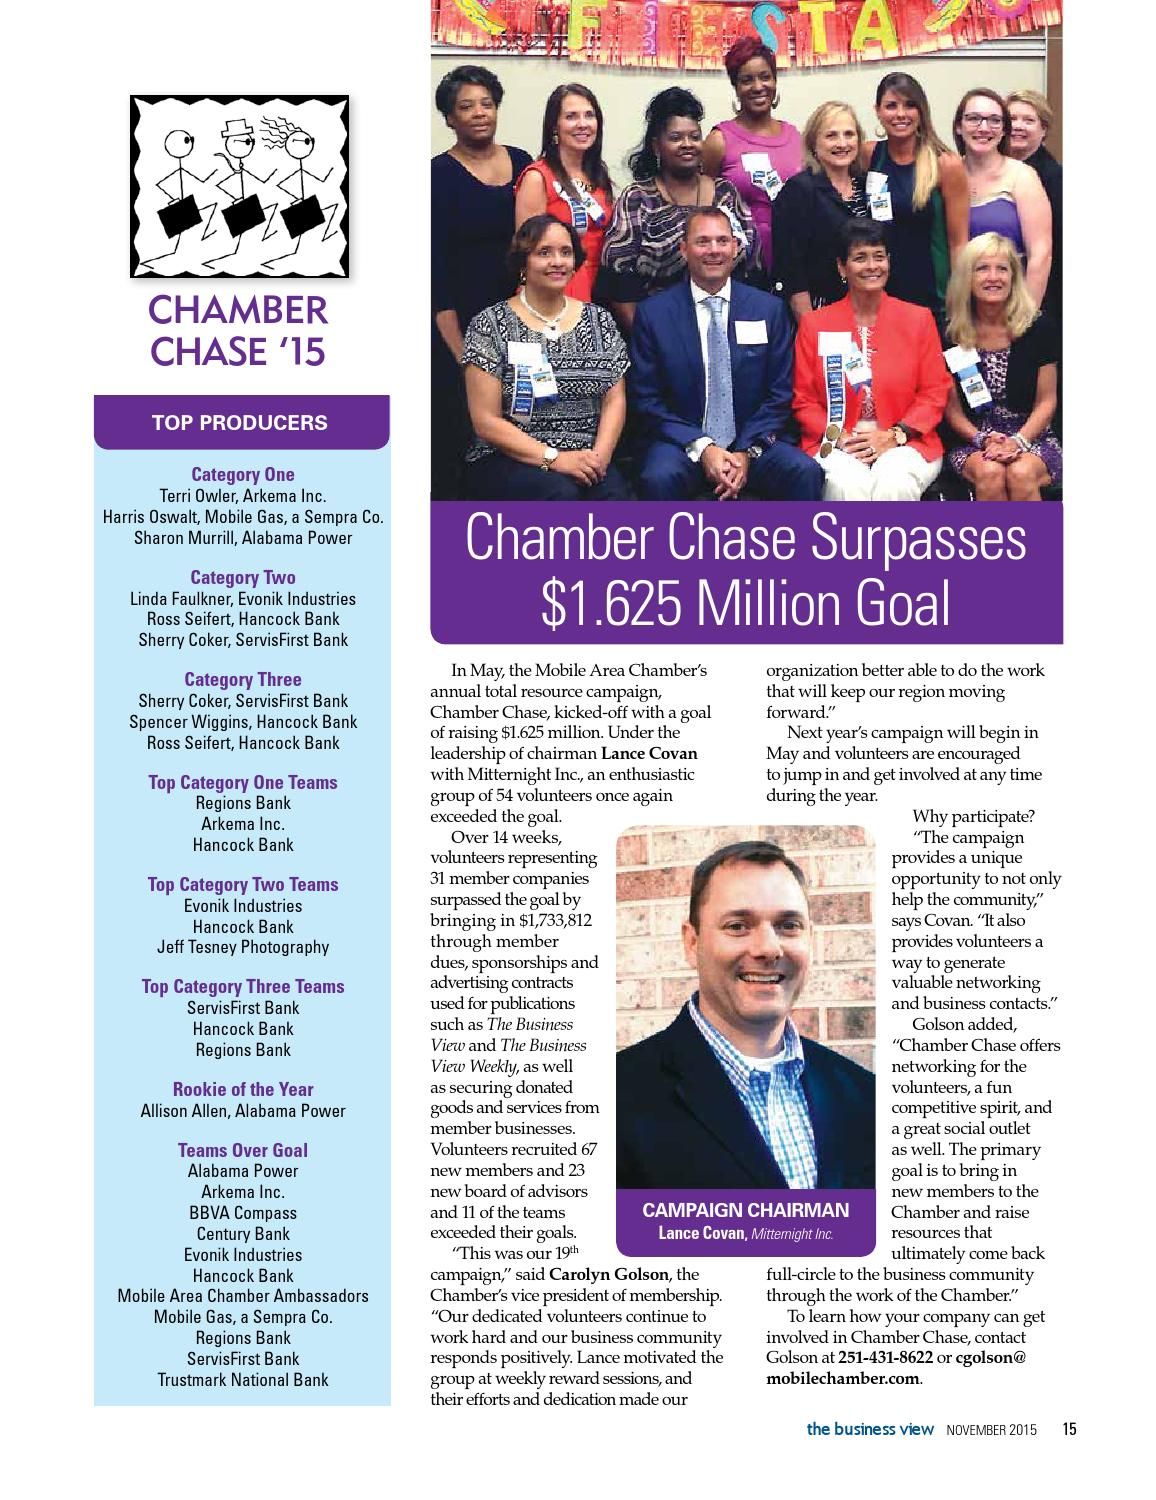 The Business View - November 2015